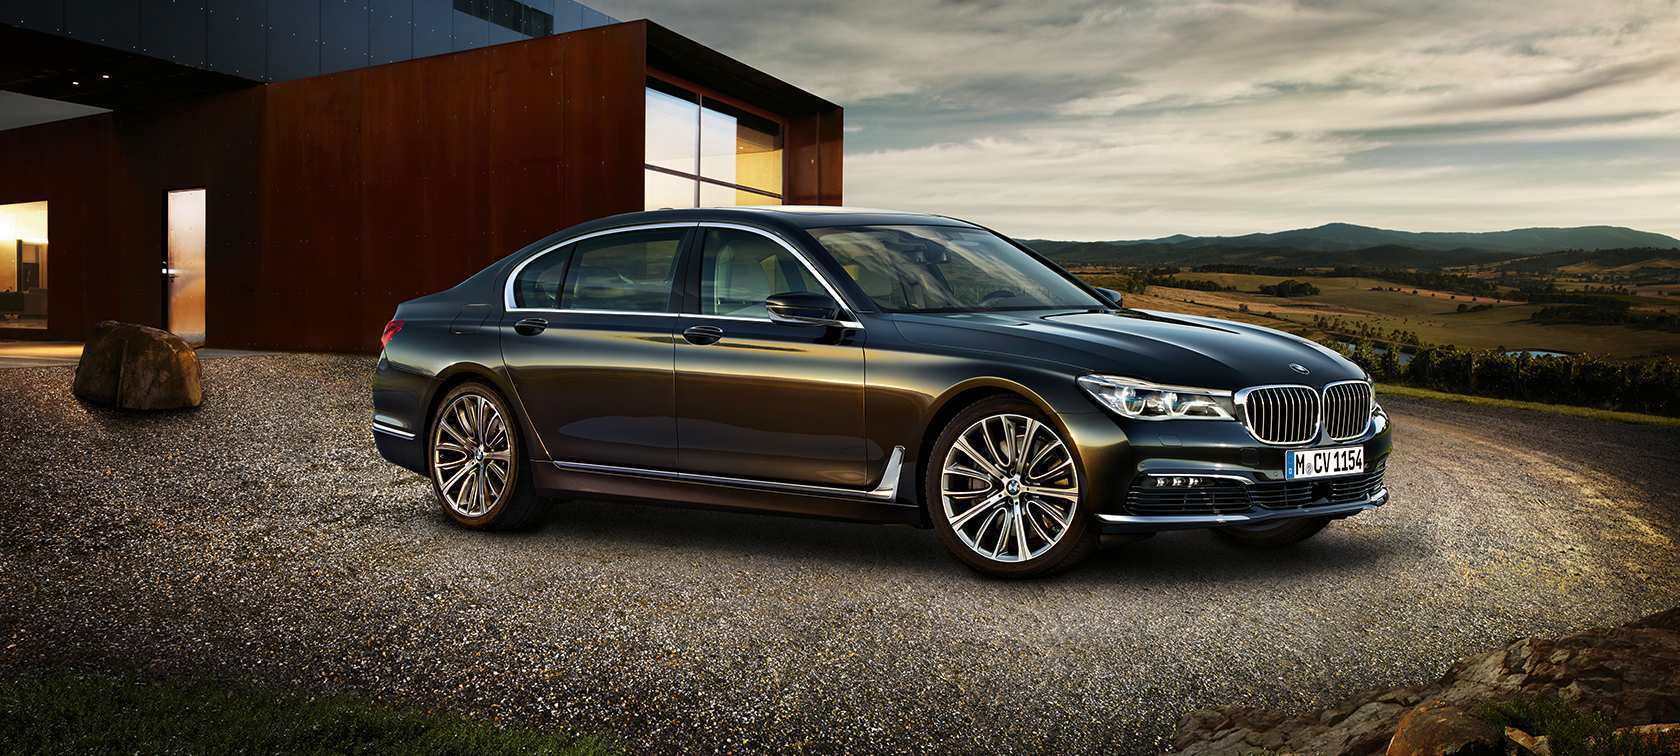 96 Best 2020 BMW 7 Series Perfection New Spesification